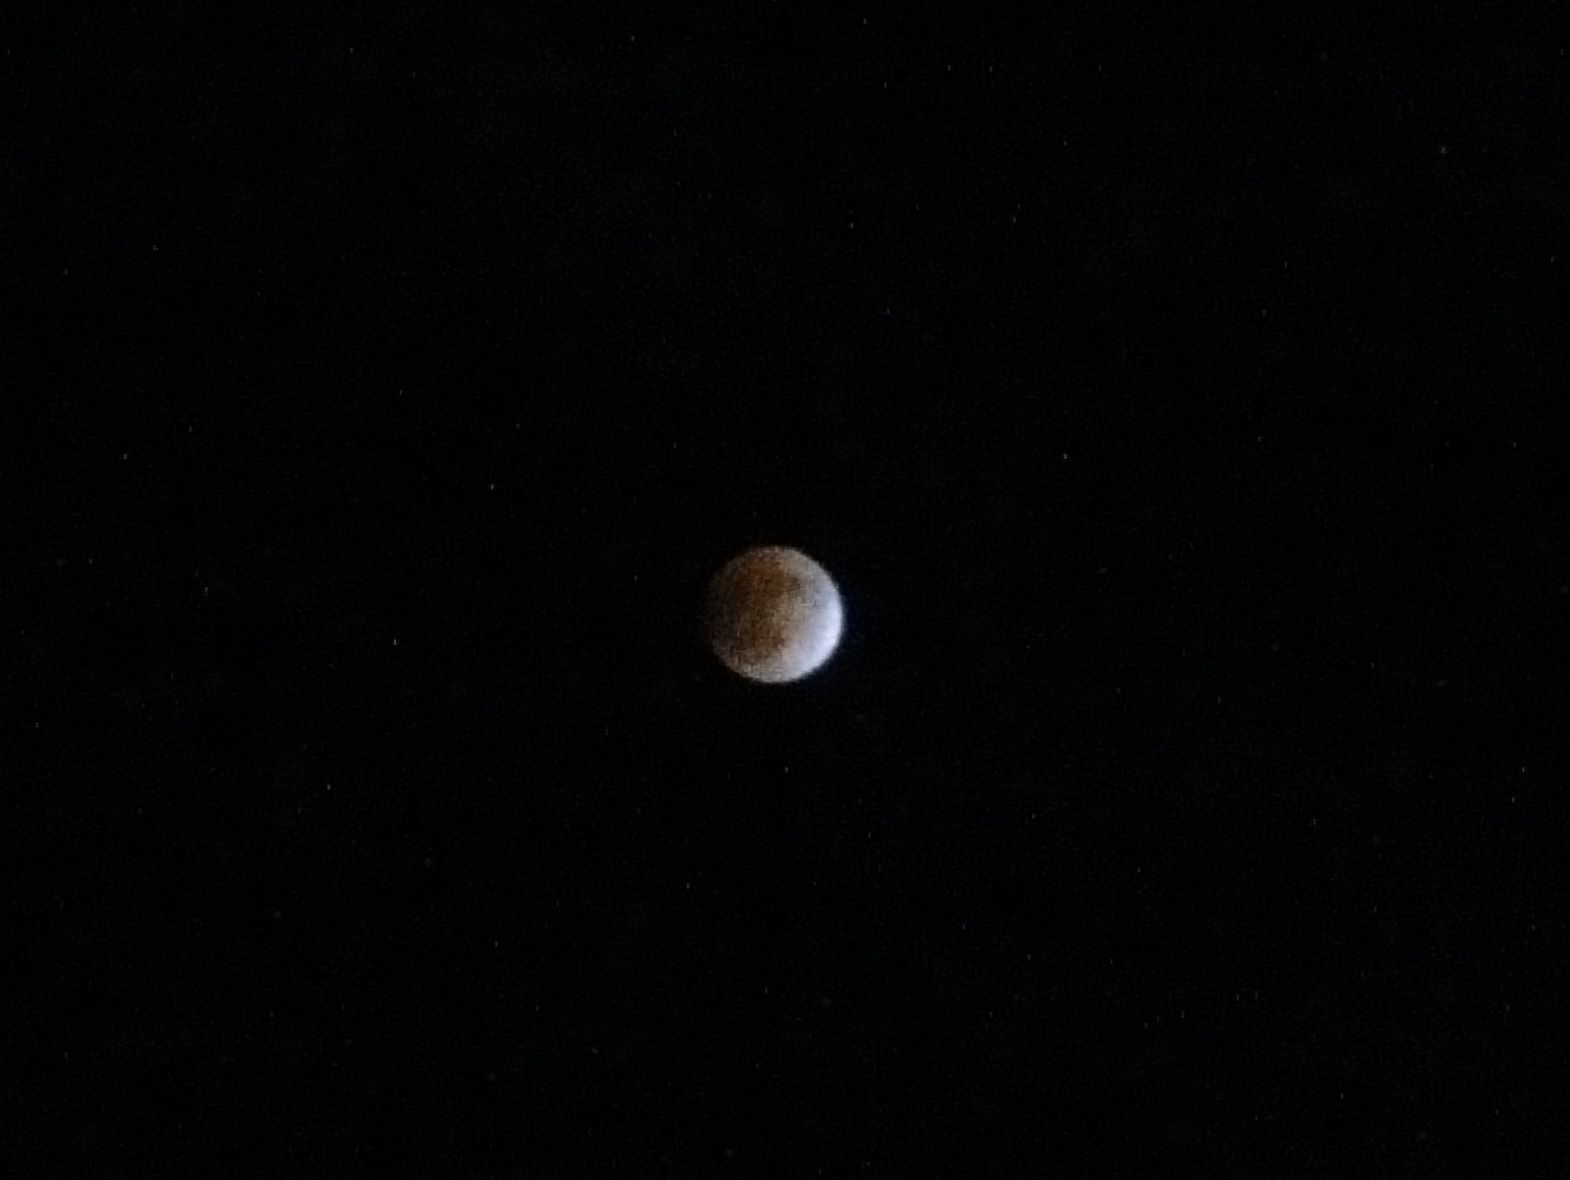 lunar_eclipse_131.jpg